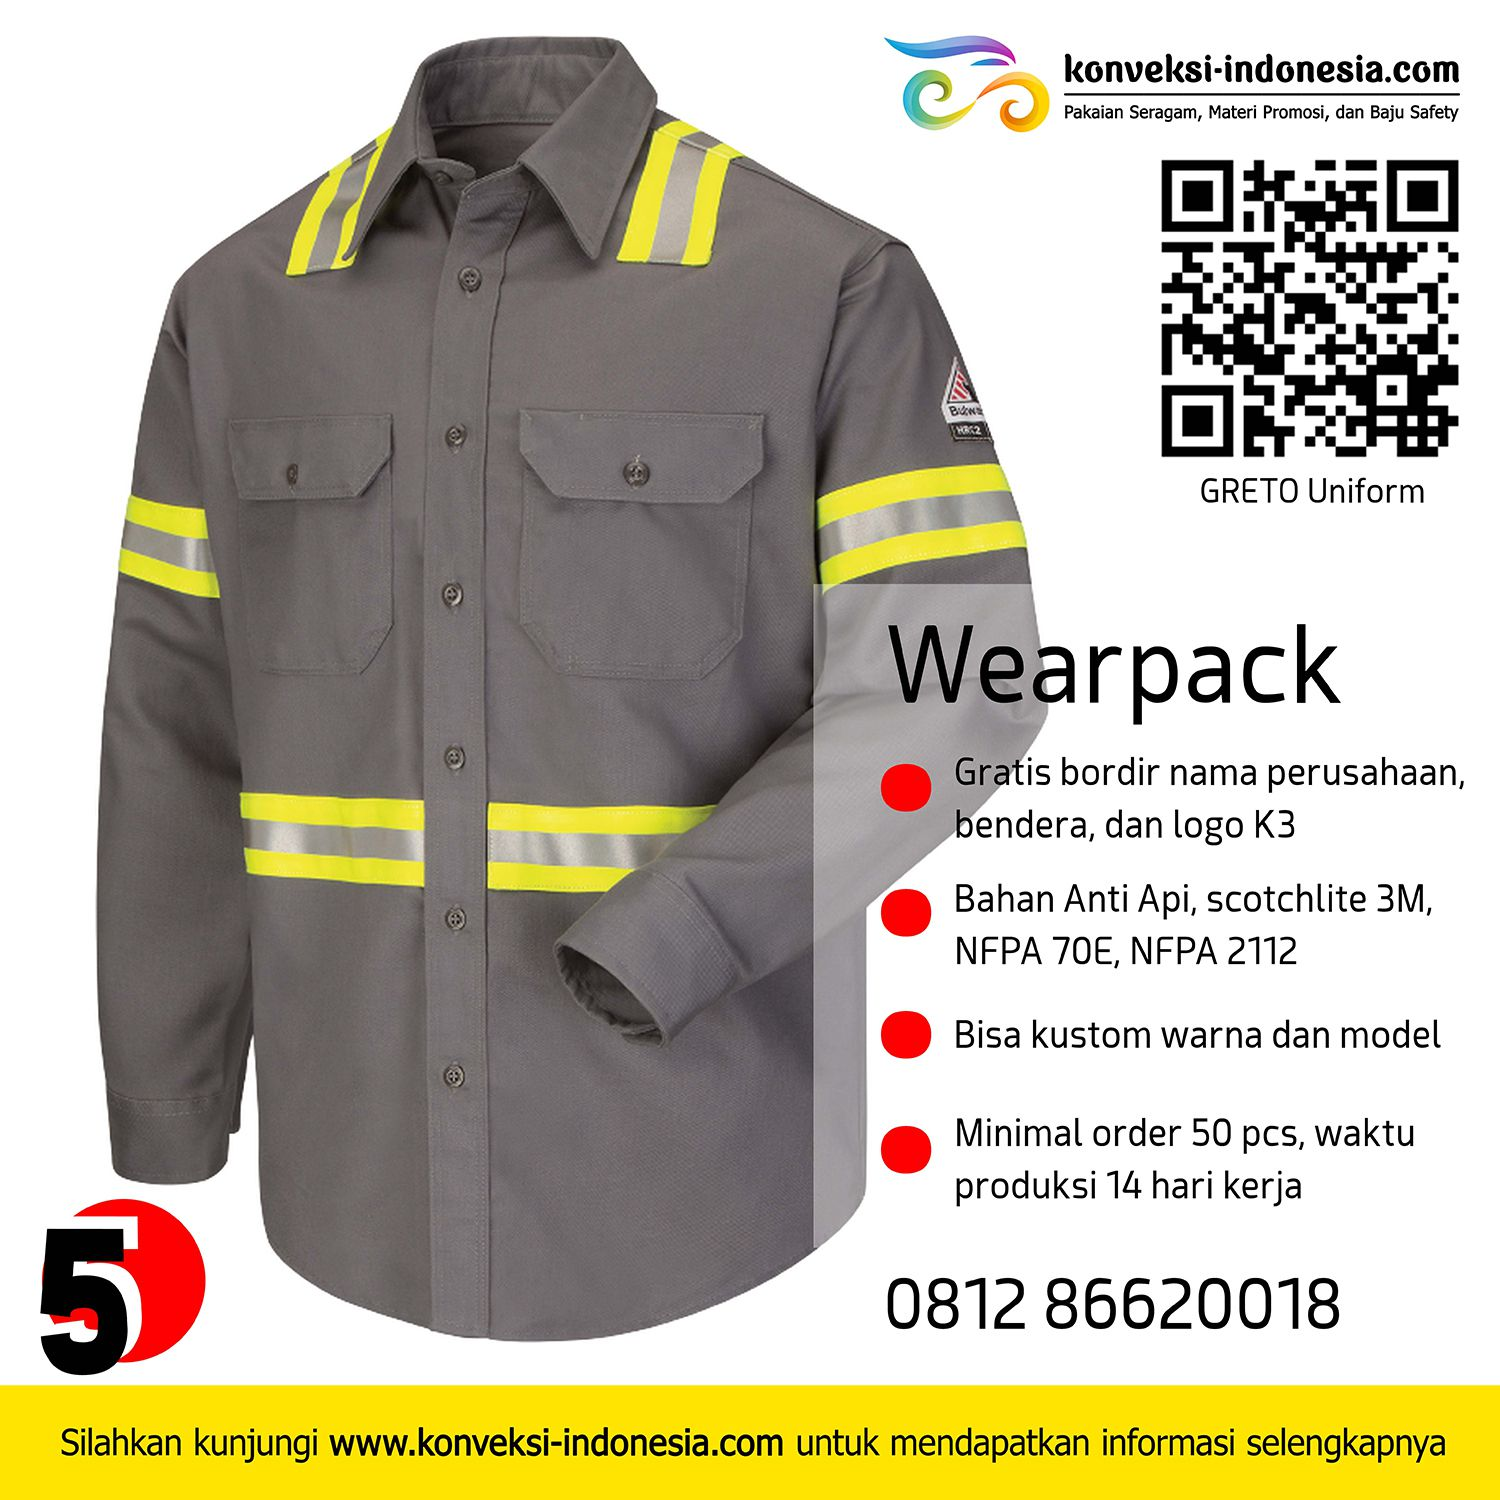 konveksi wearpack, vendor wearpack, konveksi coverall